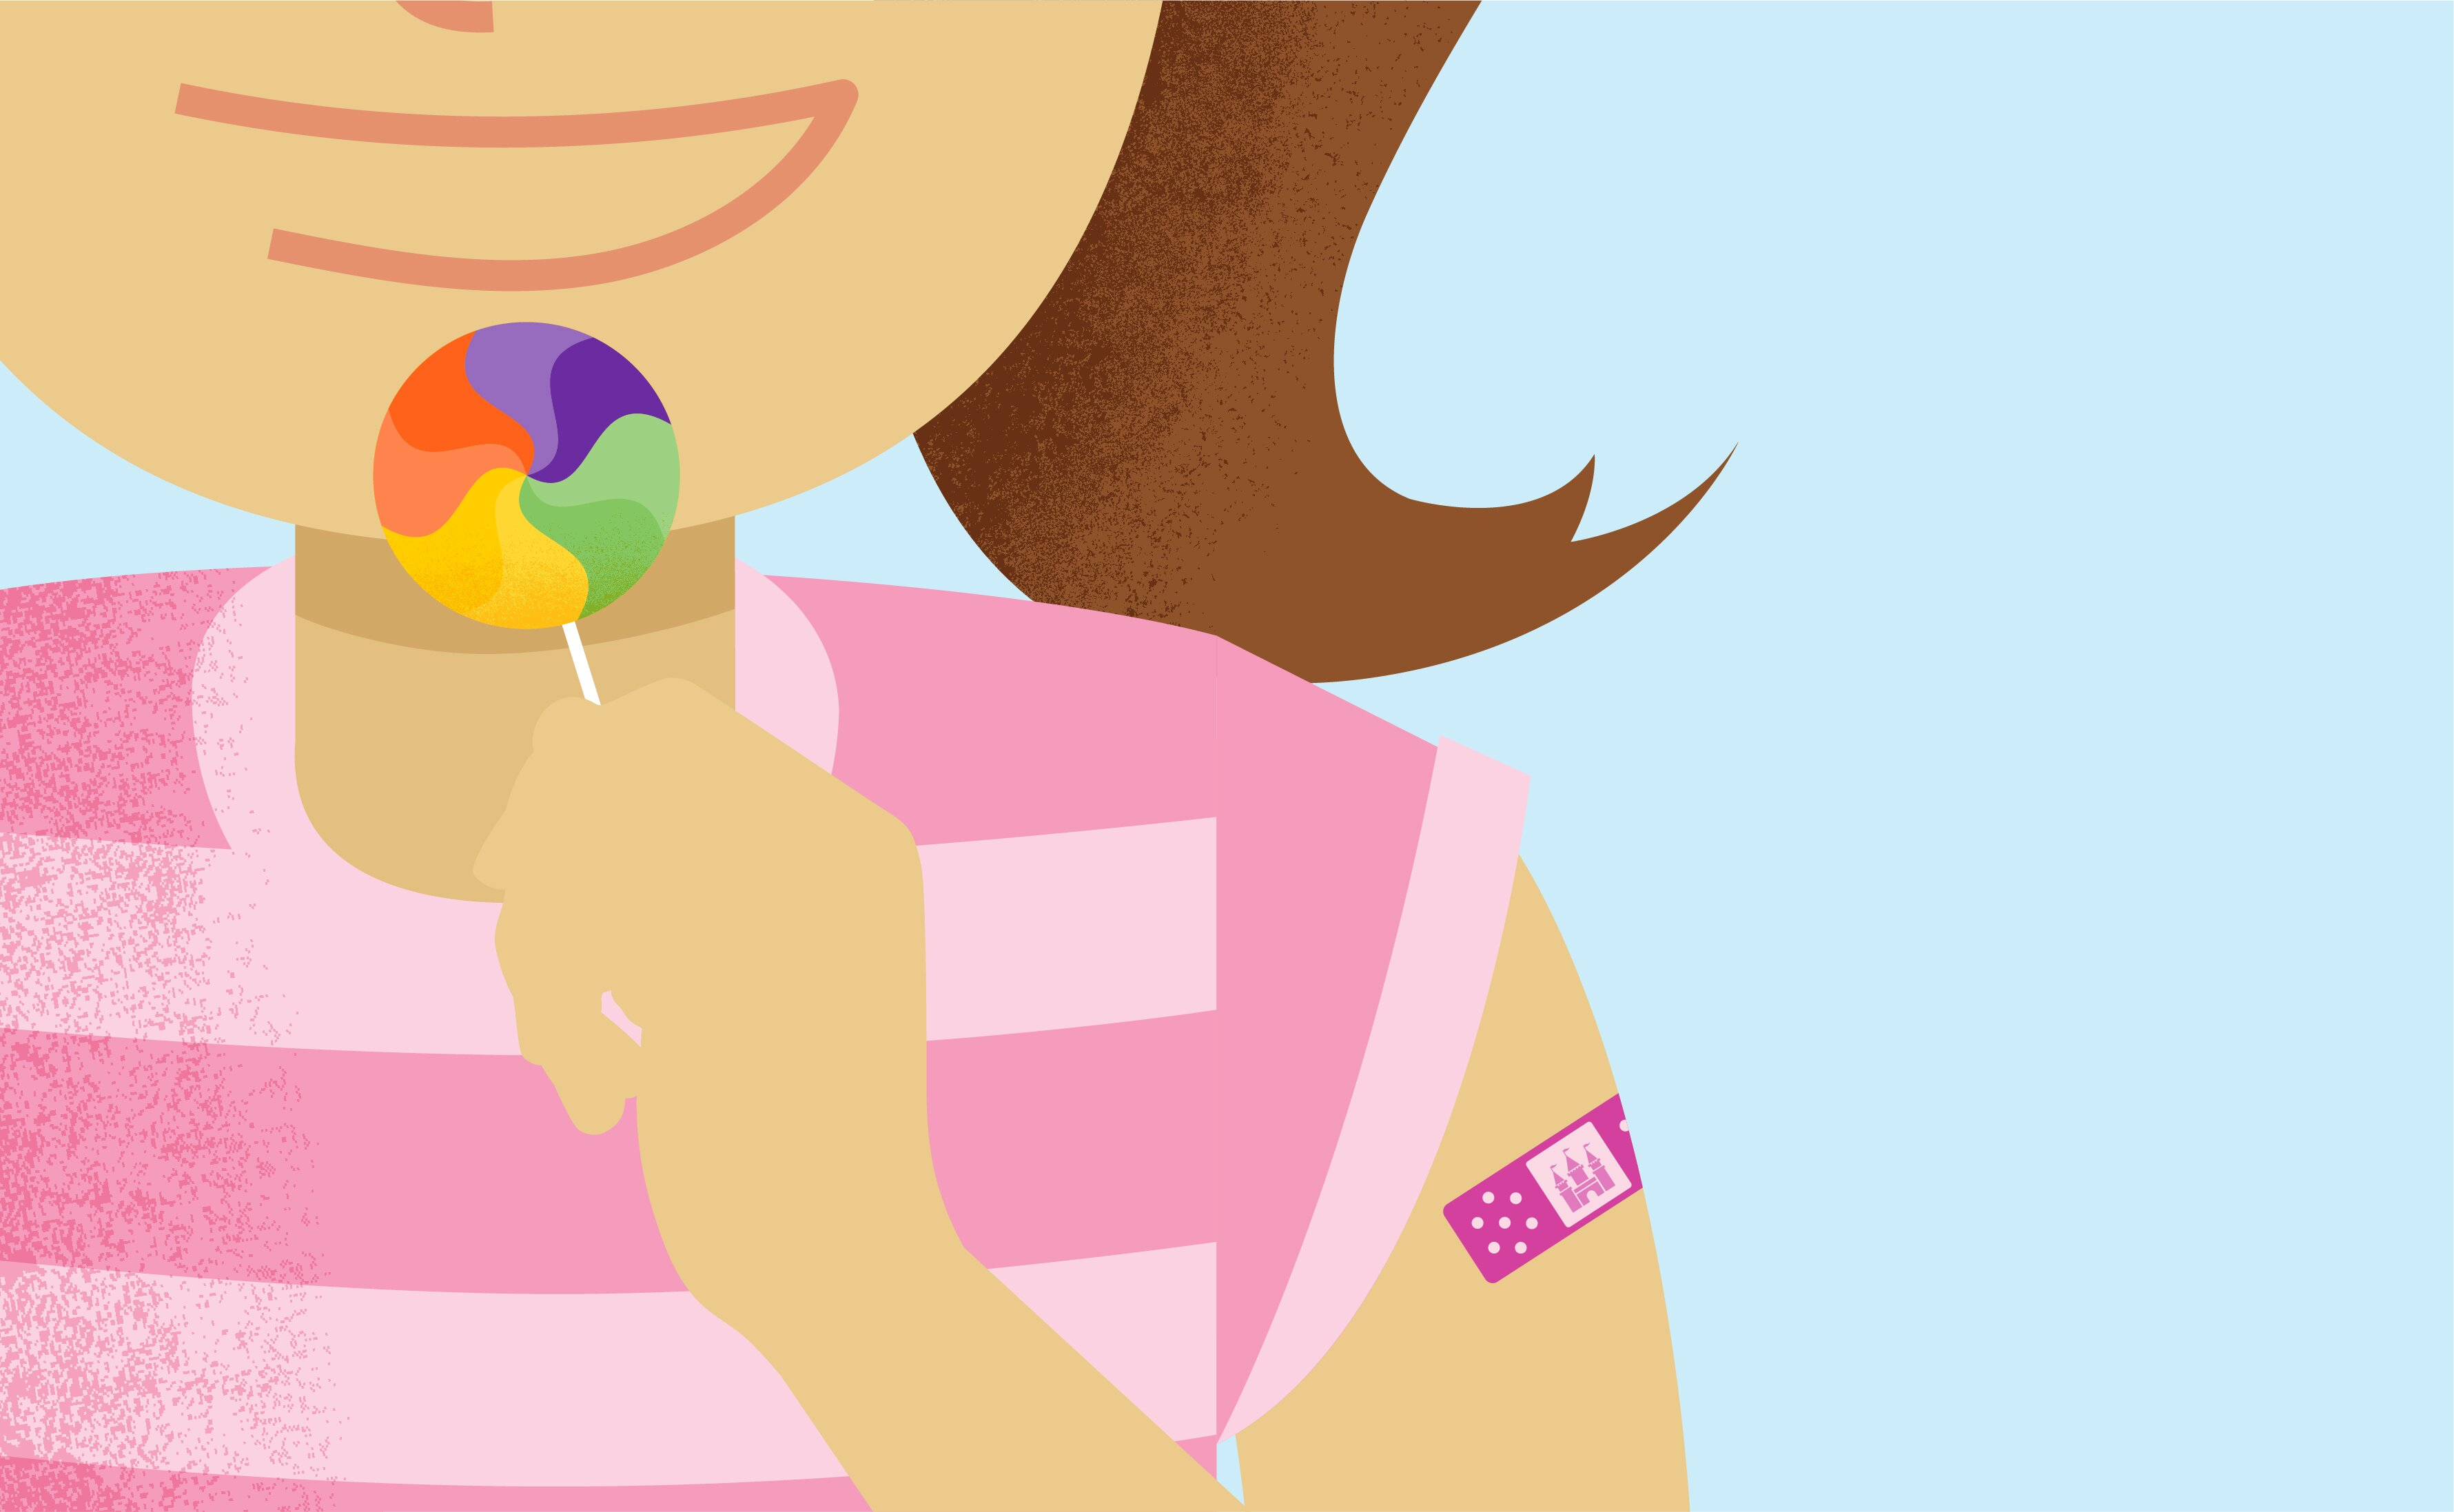 Illustration of woman with lolly and band aid over vaccination area on arm